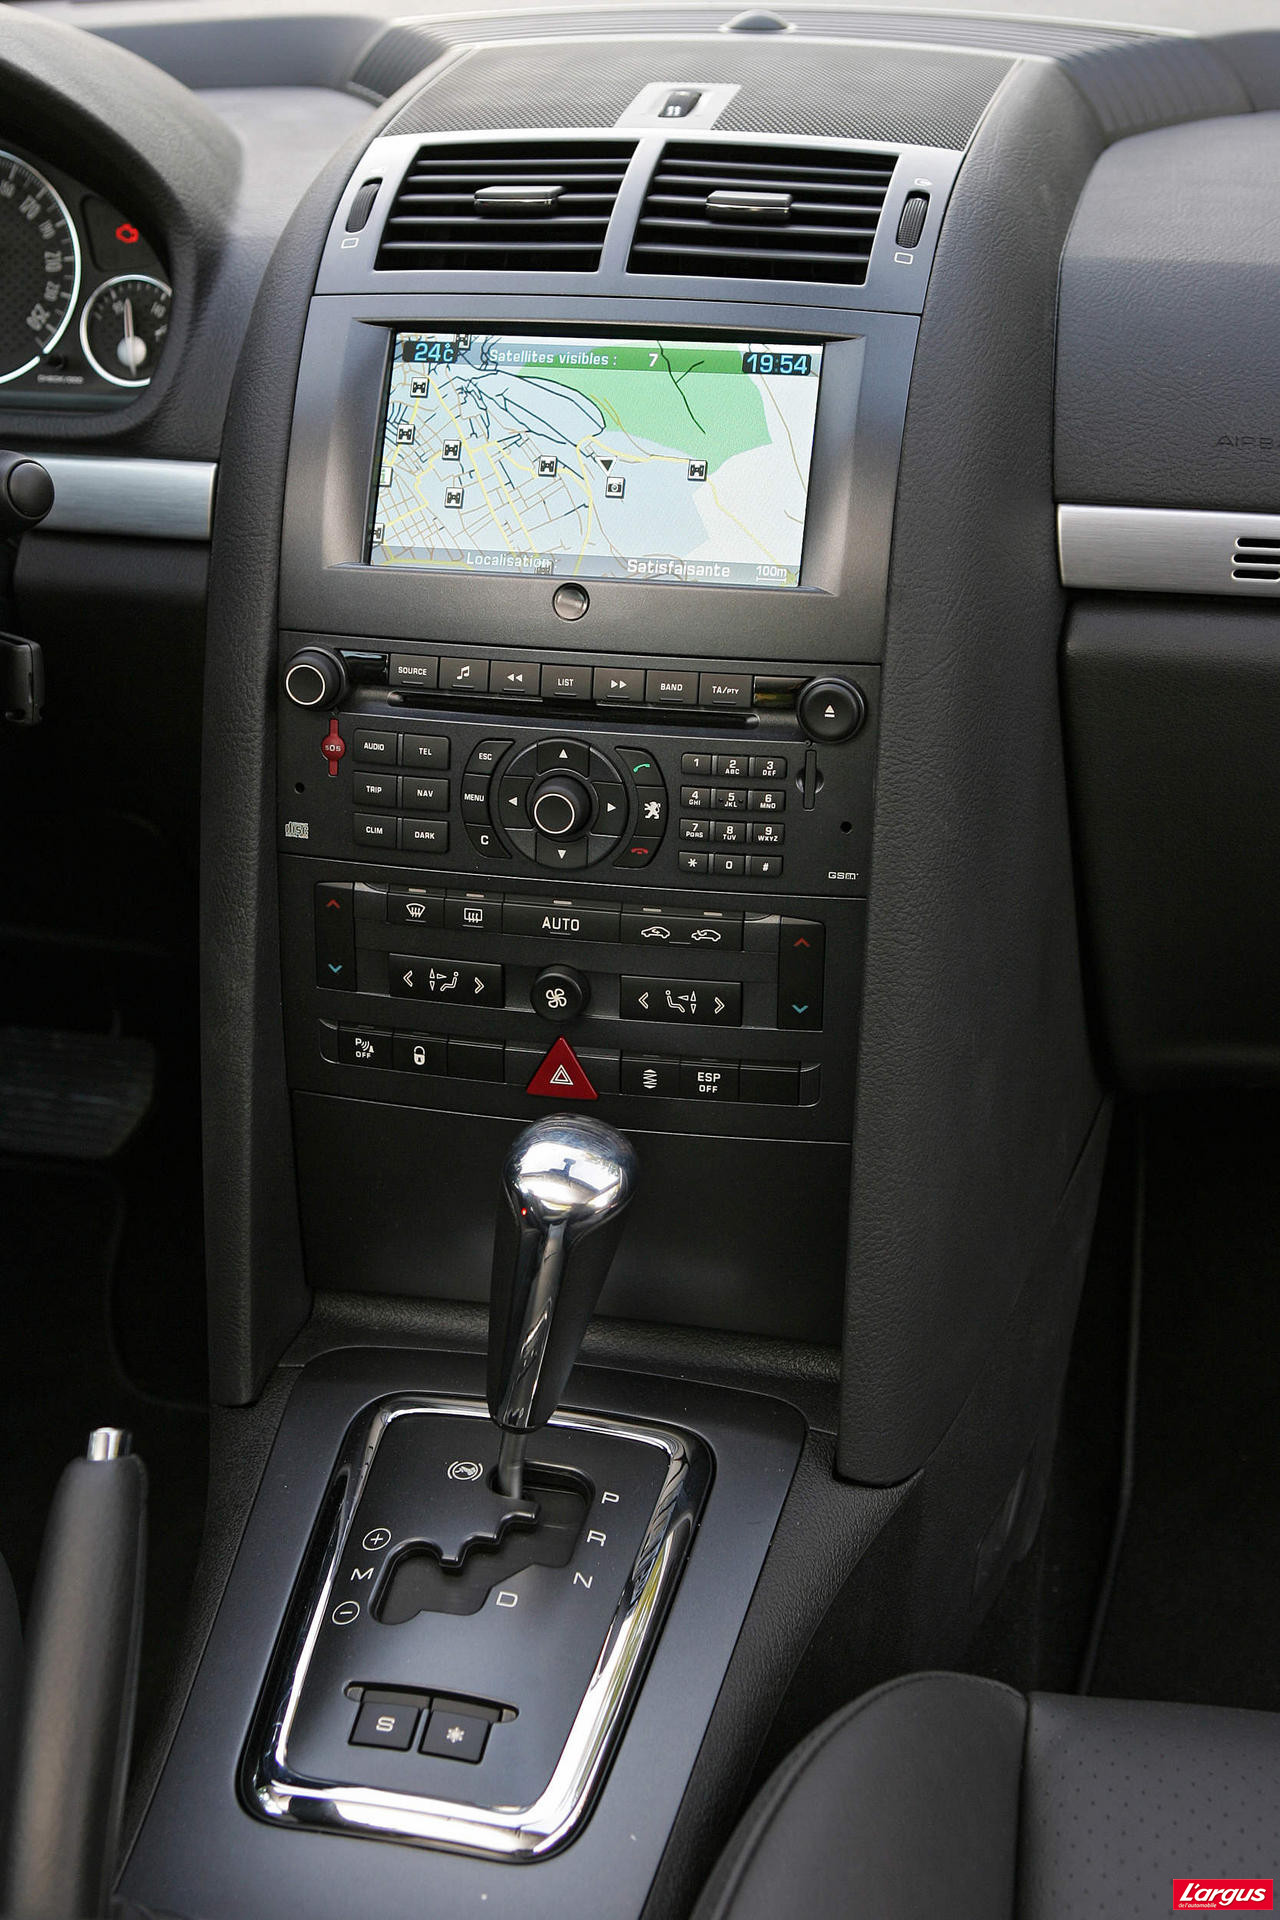 Image gallery peugeot 407 annee 2008 for Interieur 407